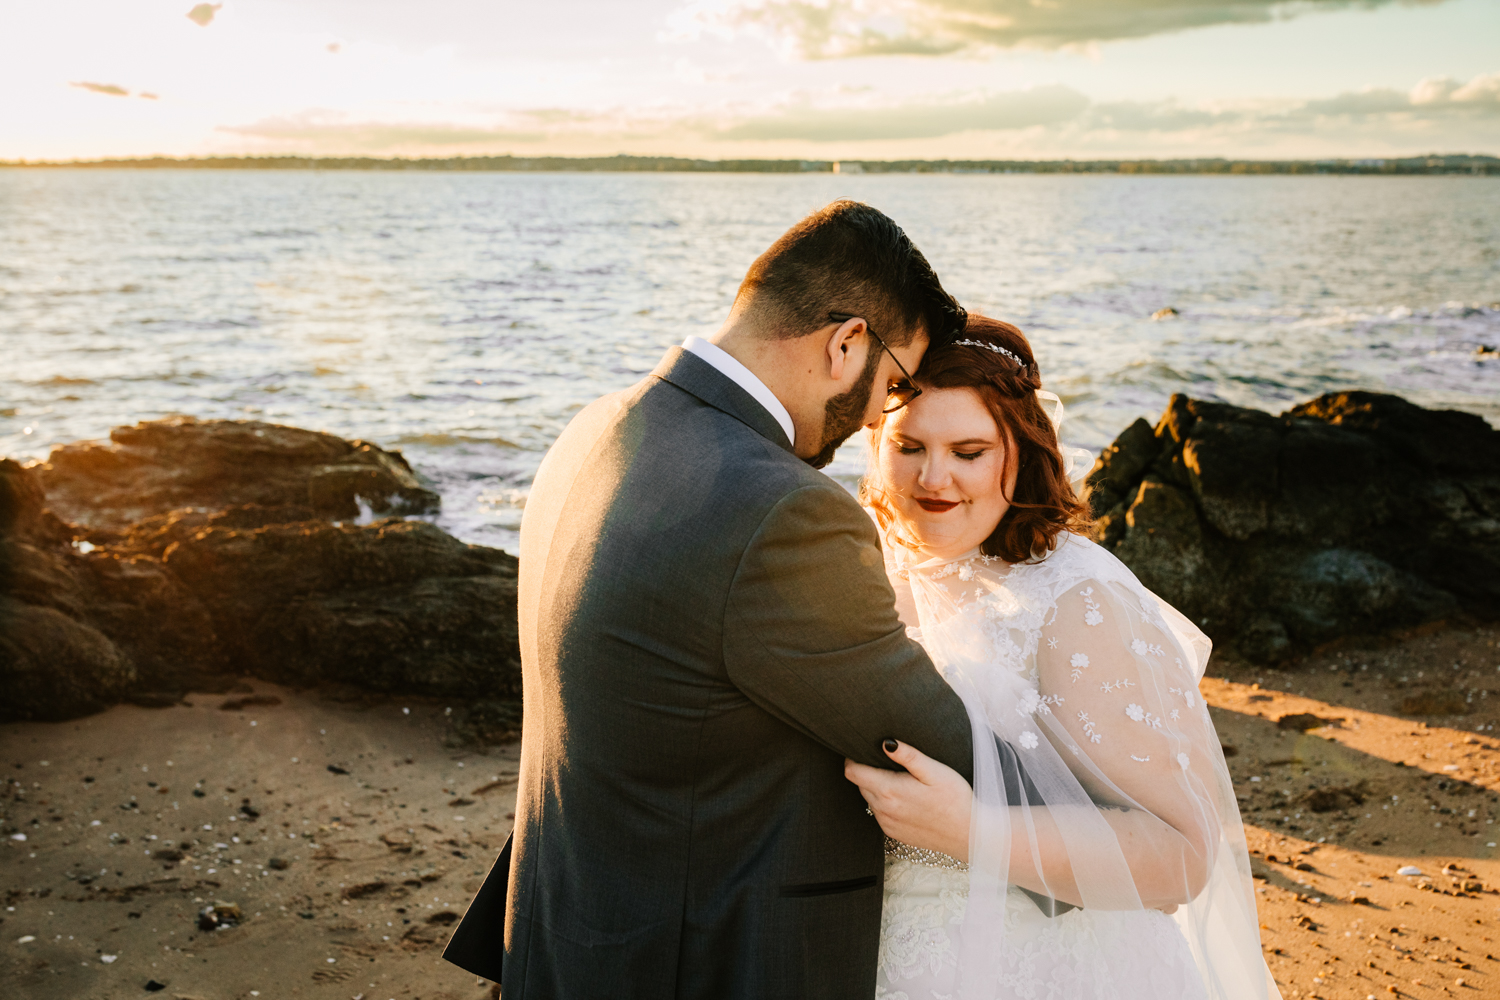 Red haired bride and groom on beach sunset wedding